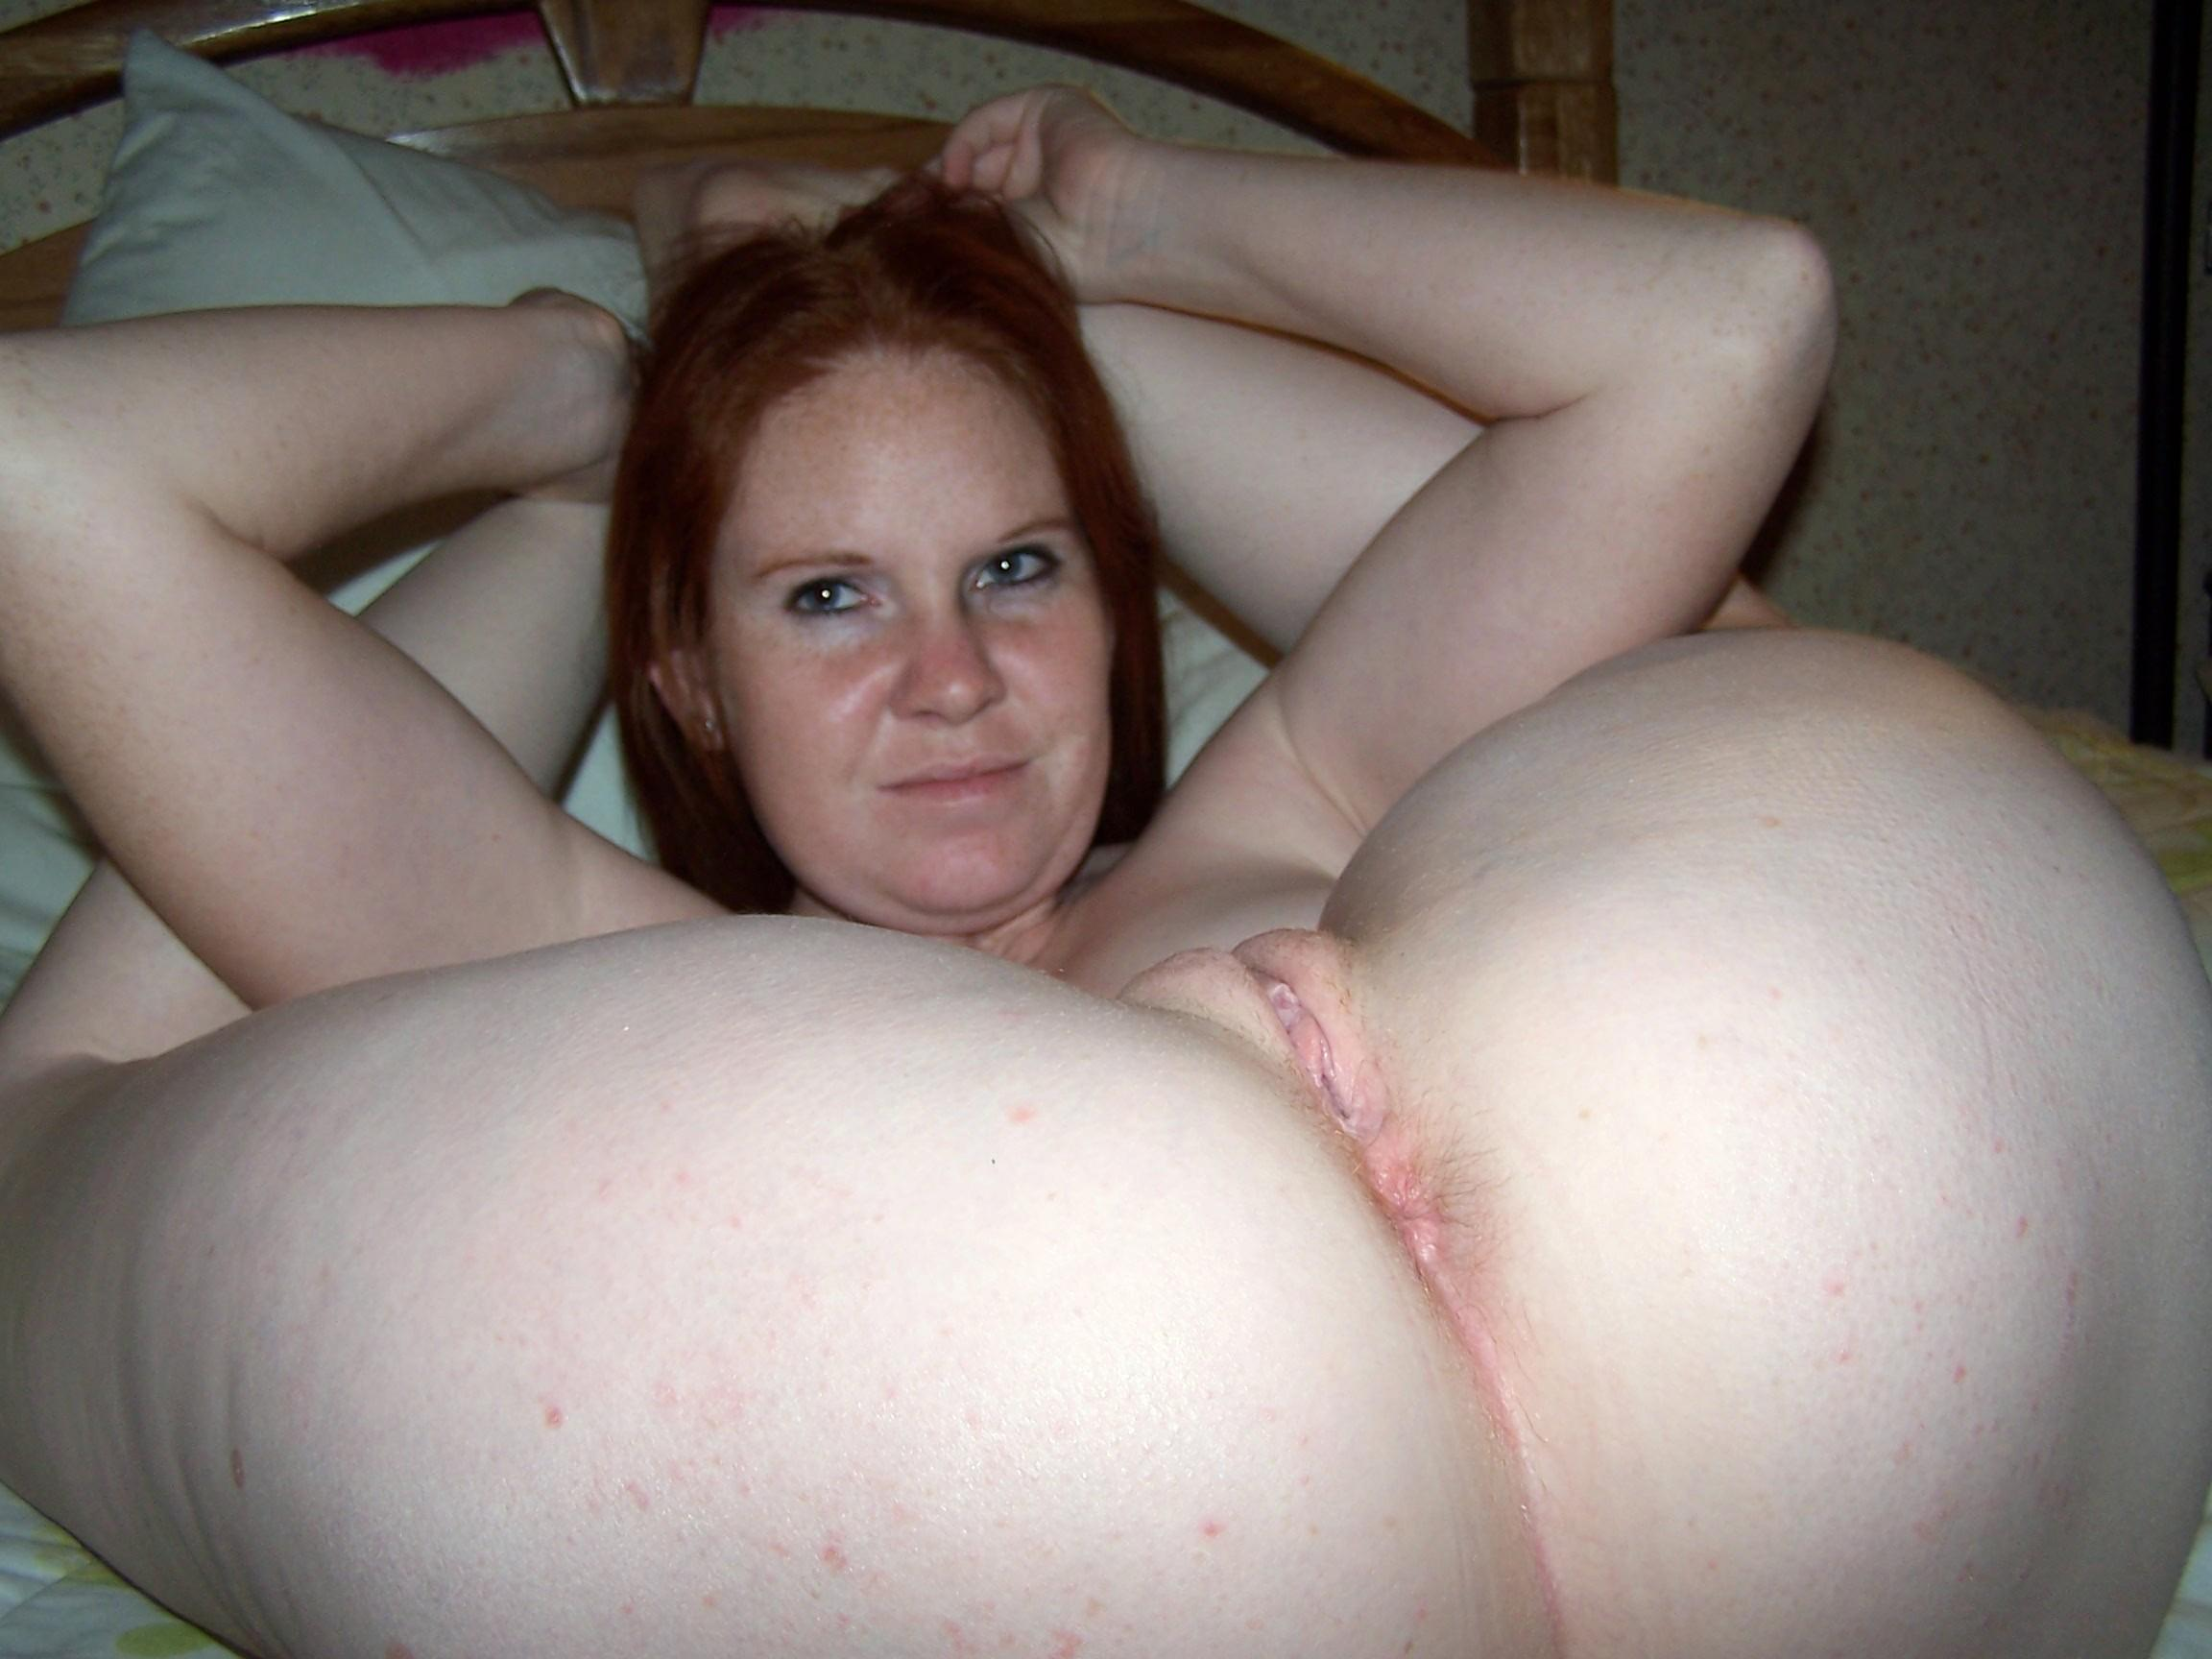 Her amature redhead fuck was that